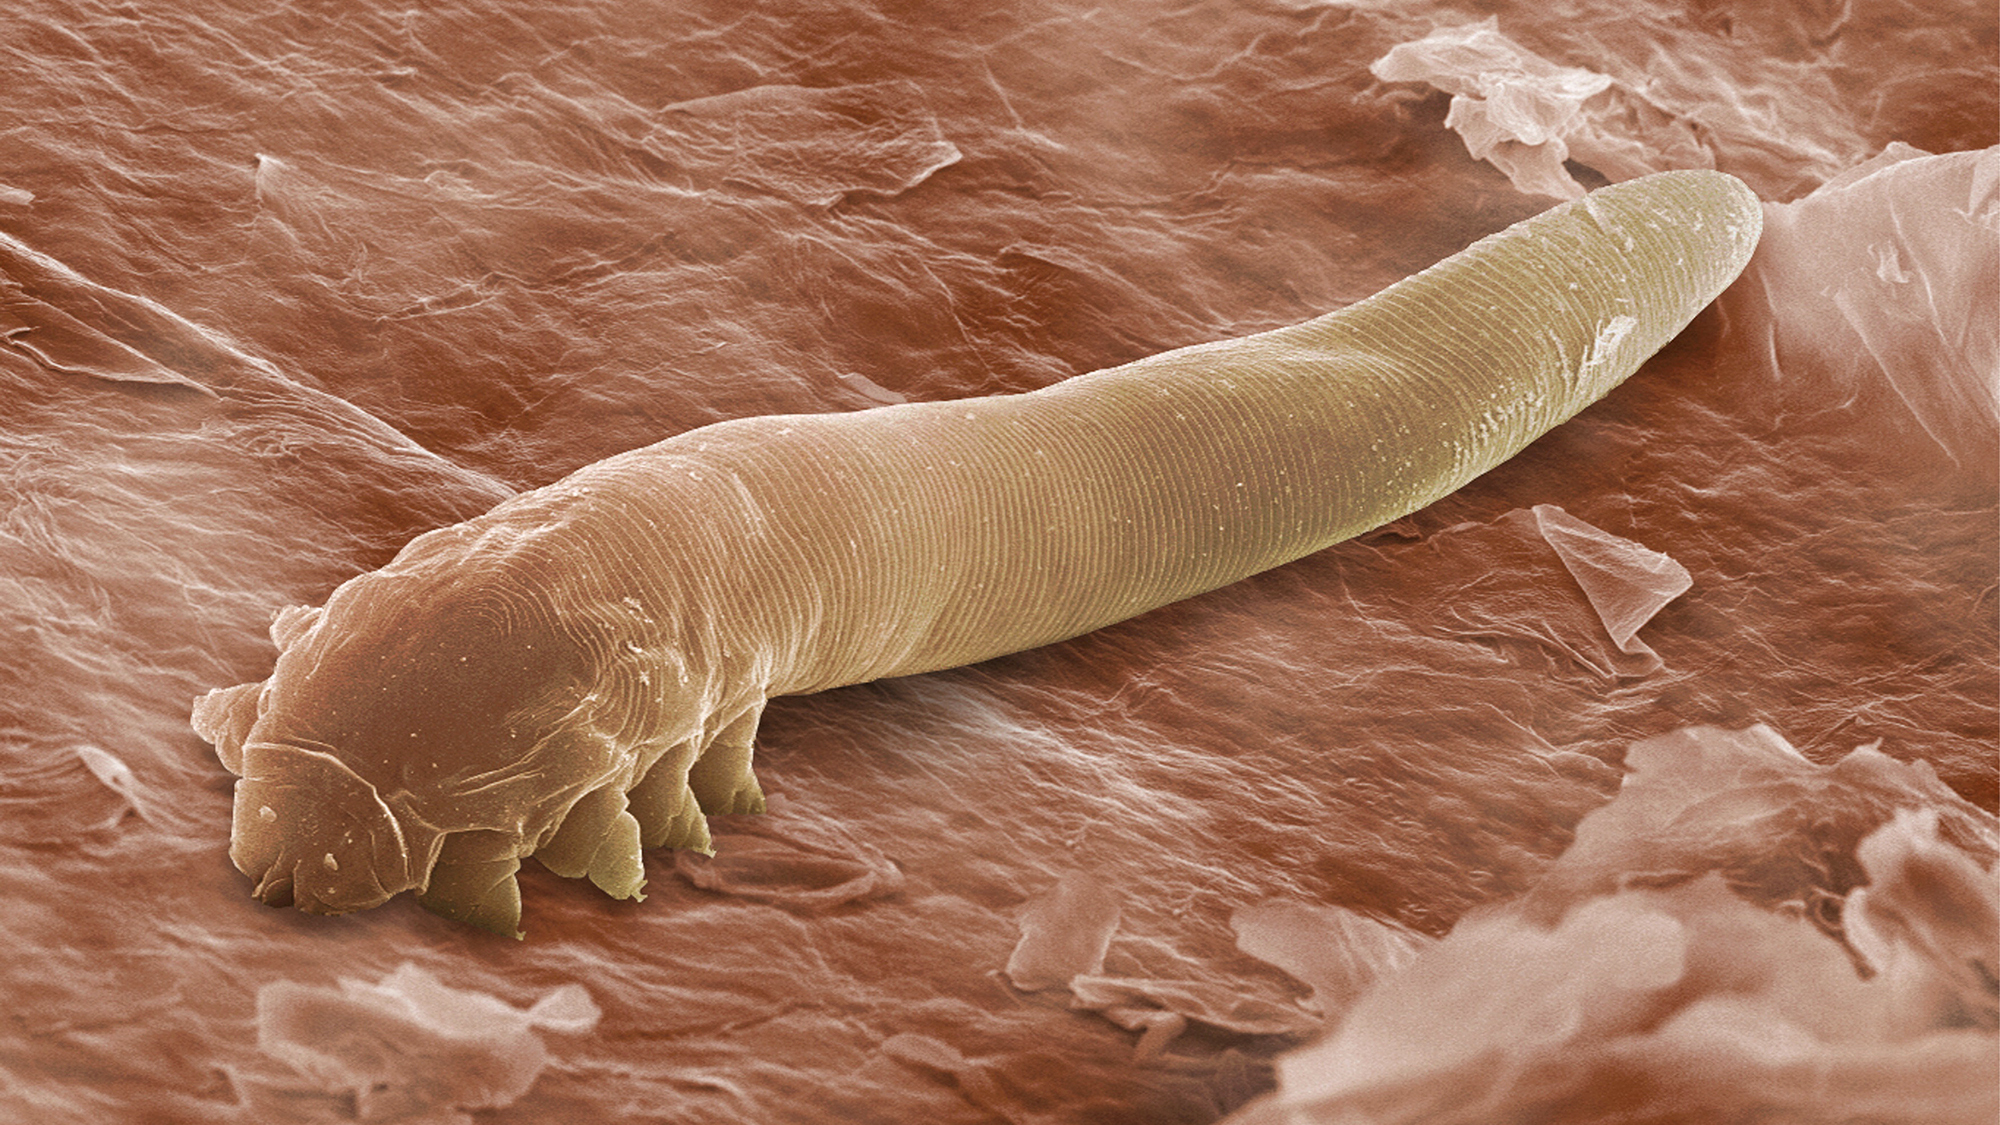 Our Parasites And Vermin Reveal Secrets Of Human History